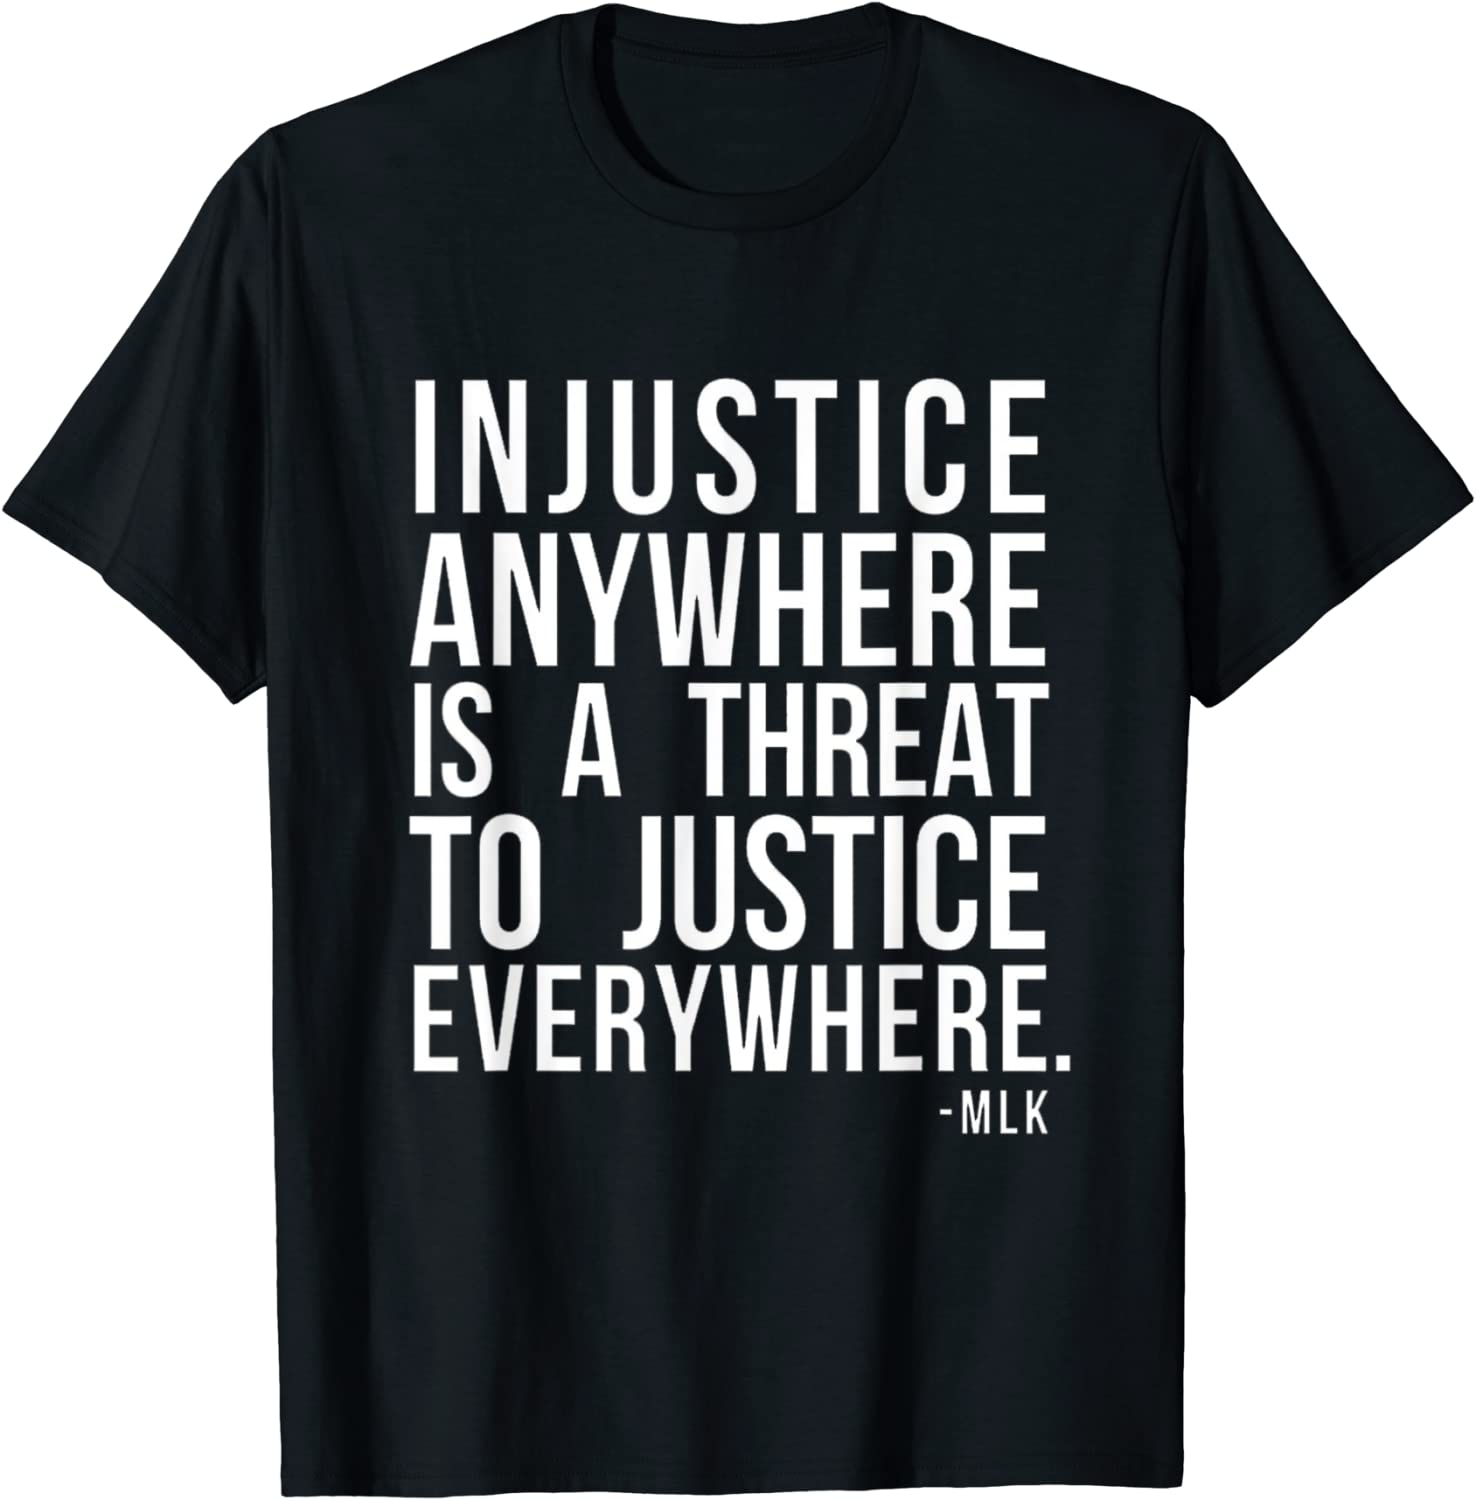 Injustice anywhere is a threat T-Shi justice FRONT New color 2021 model everywhere to